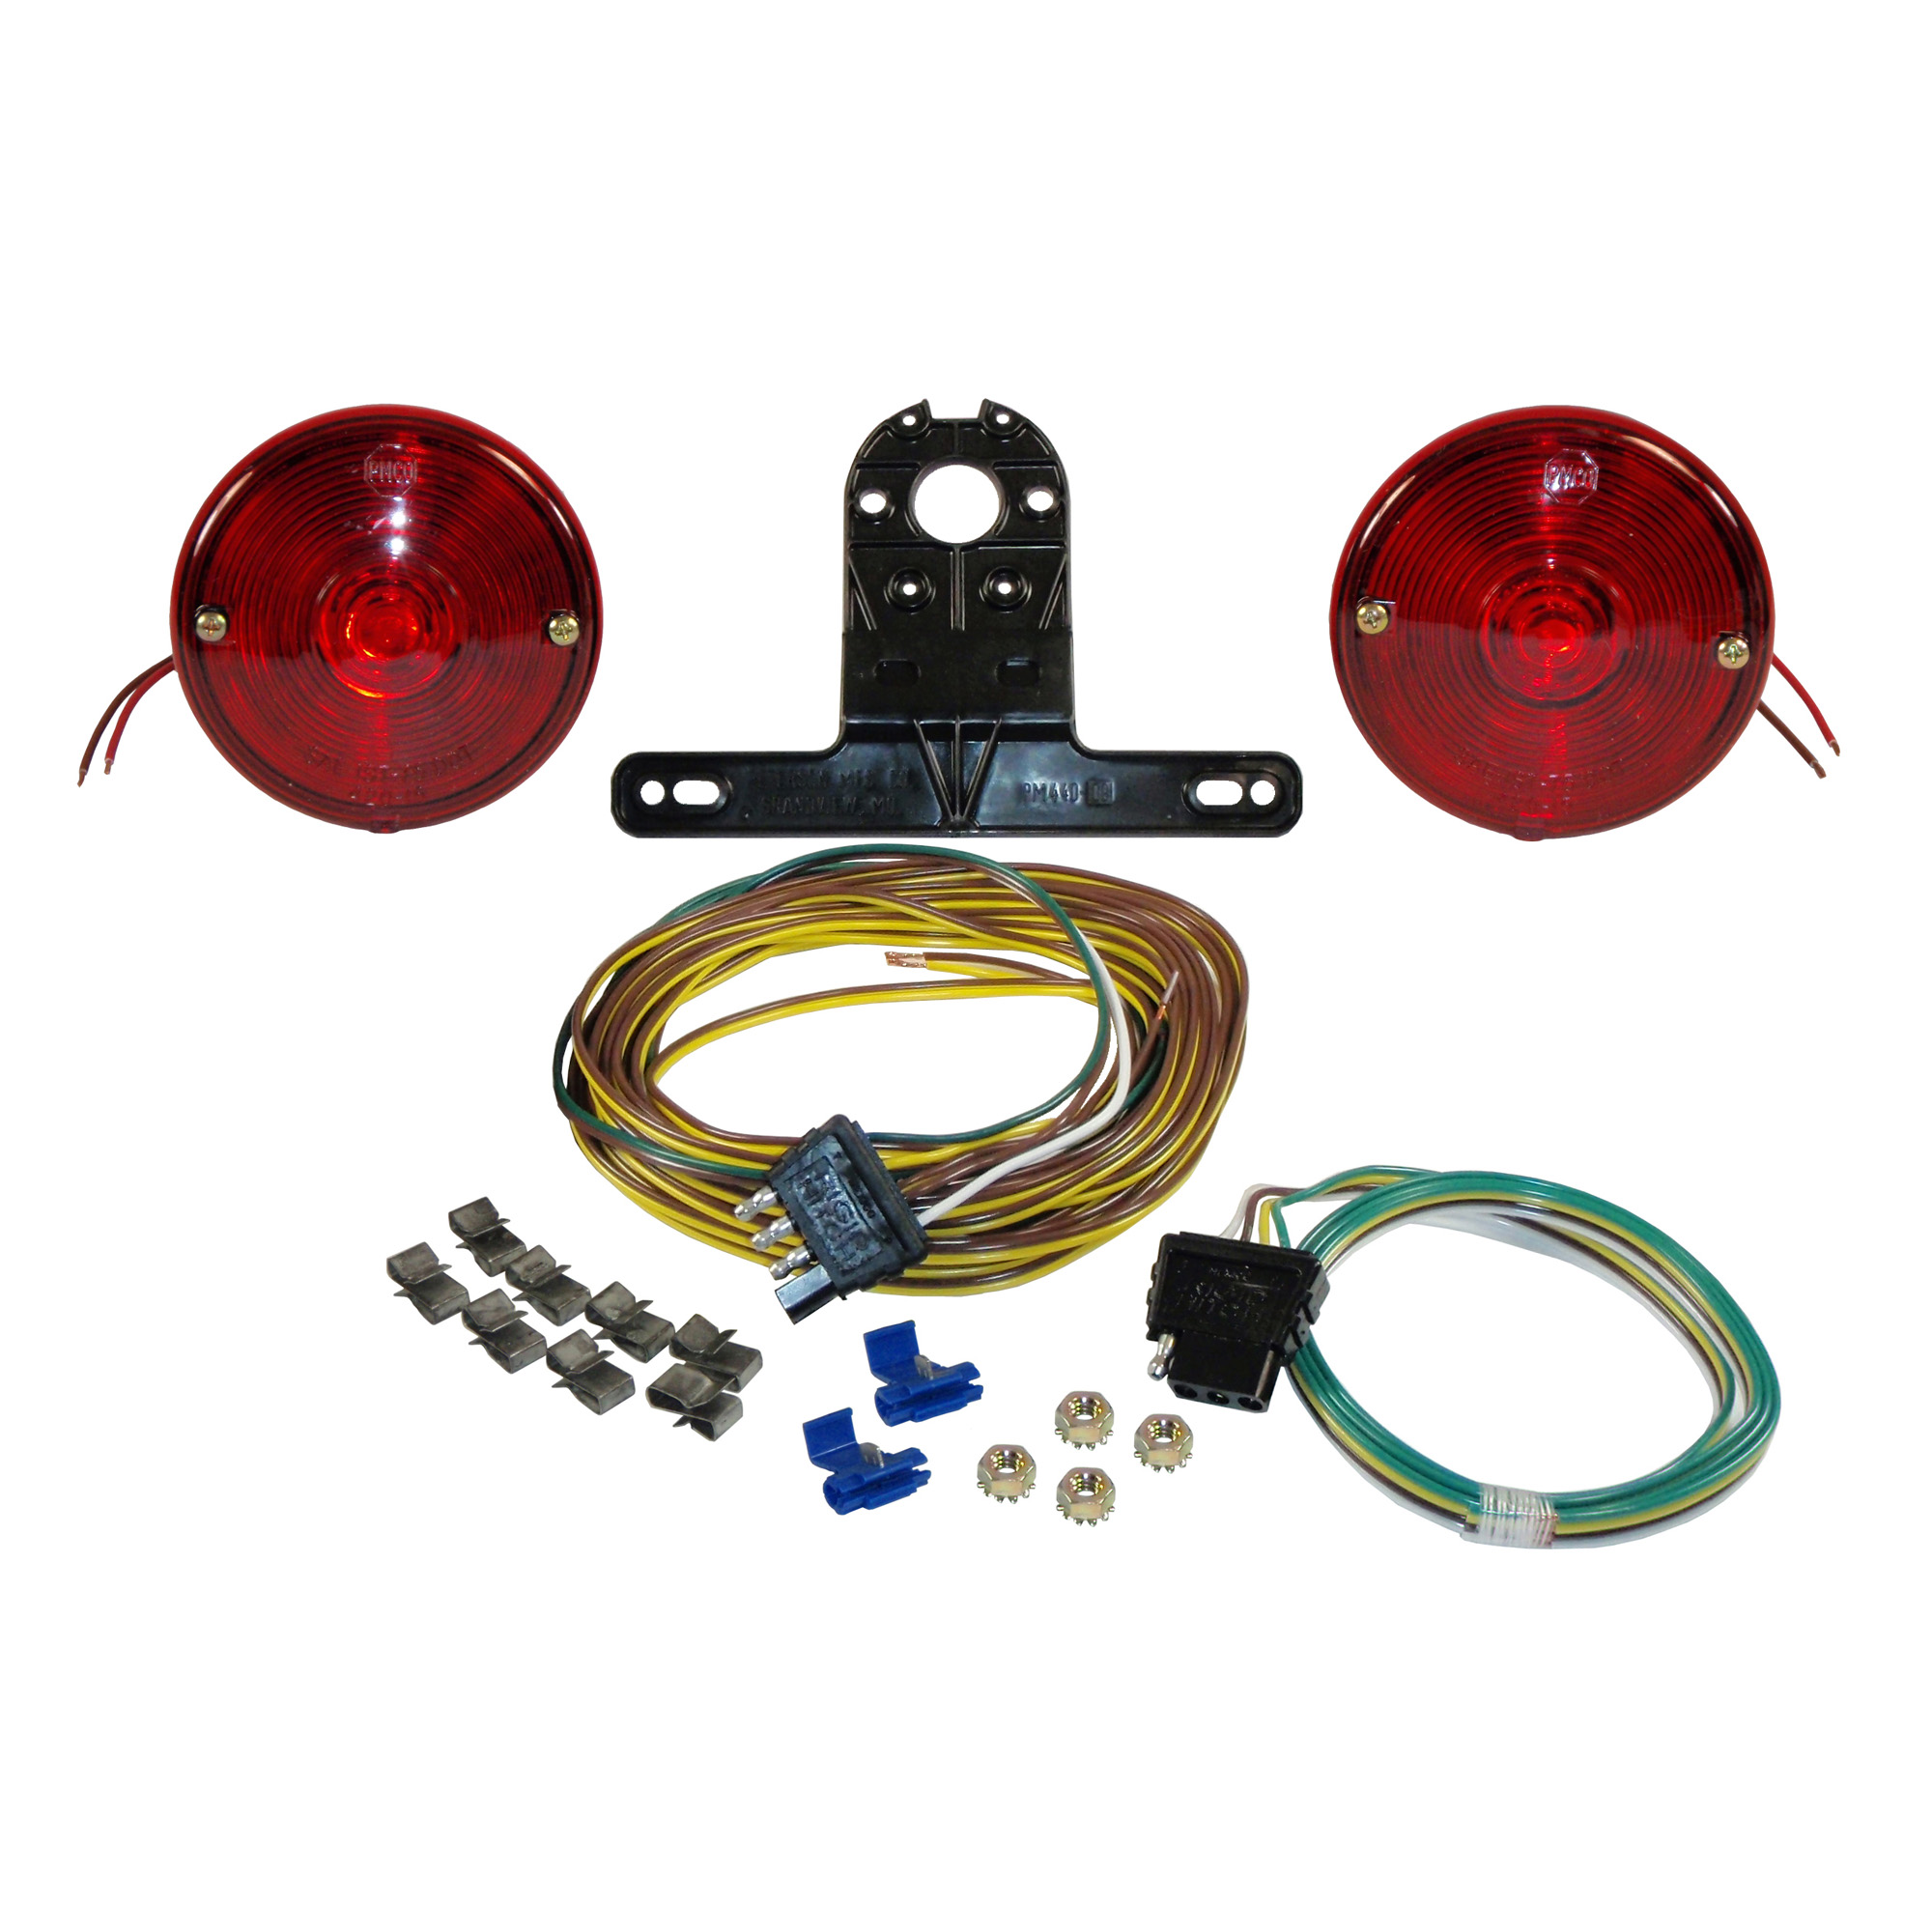 Economy Round Trailer Light Kit with Wiring Harness